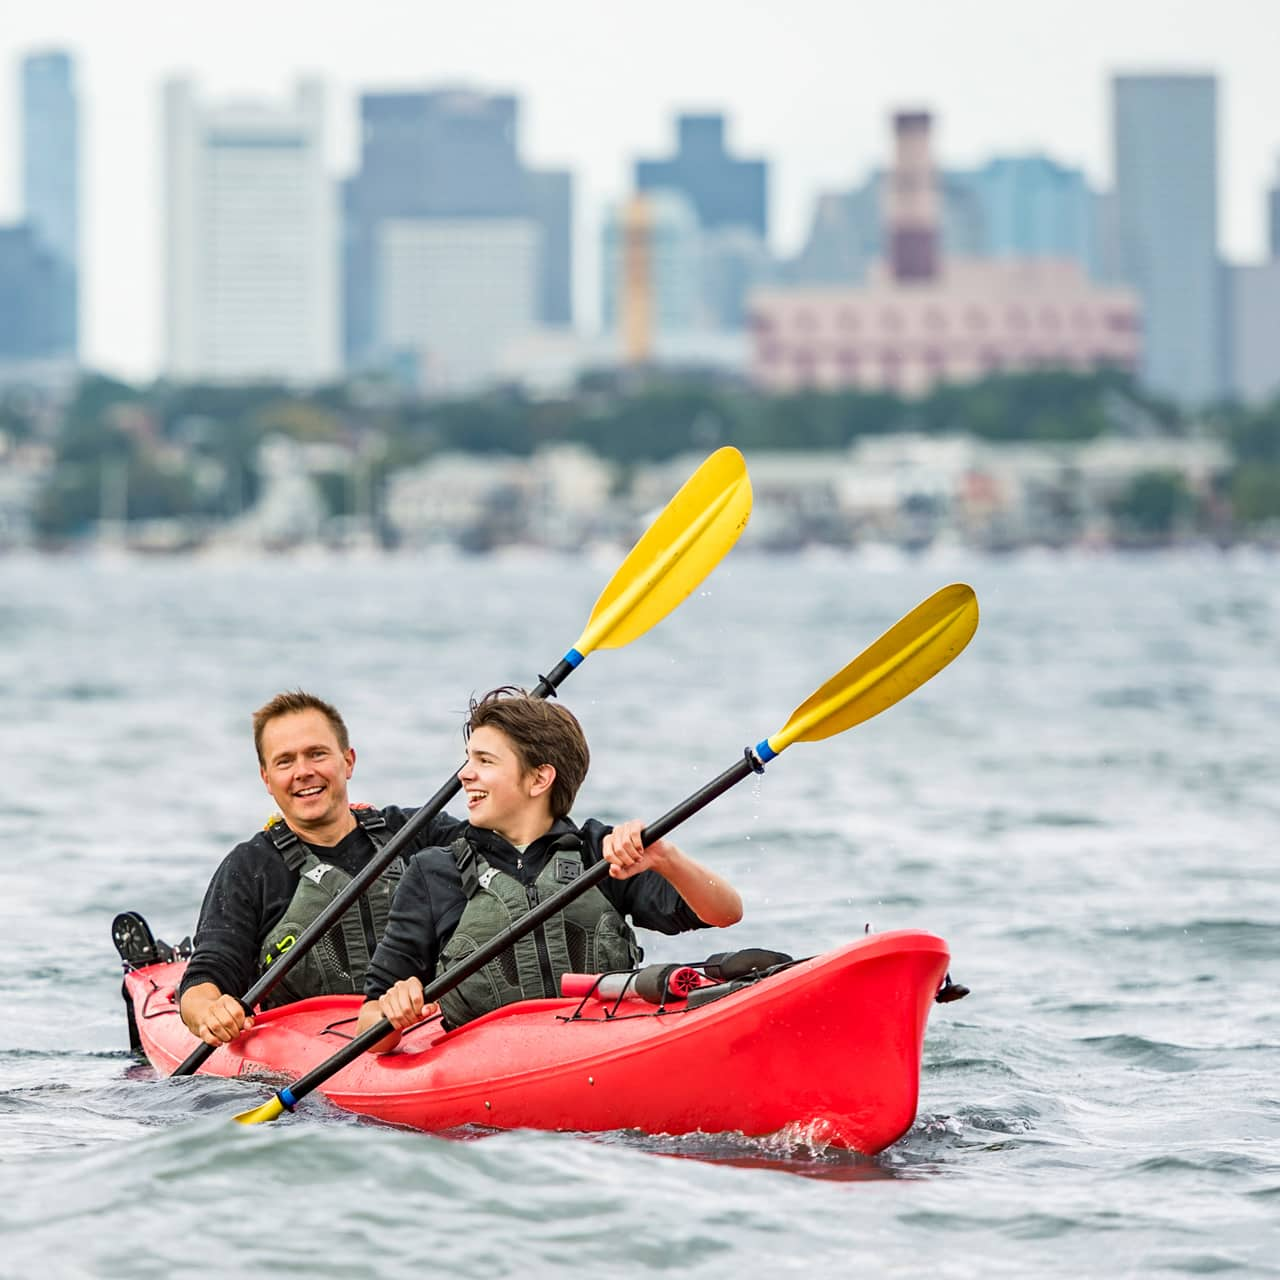 Two Adventurers in kayaks row in the water with the Boston skyline in the background